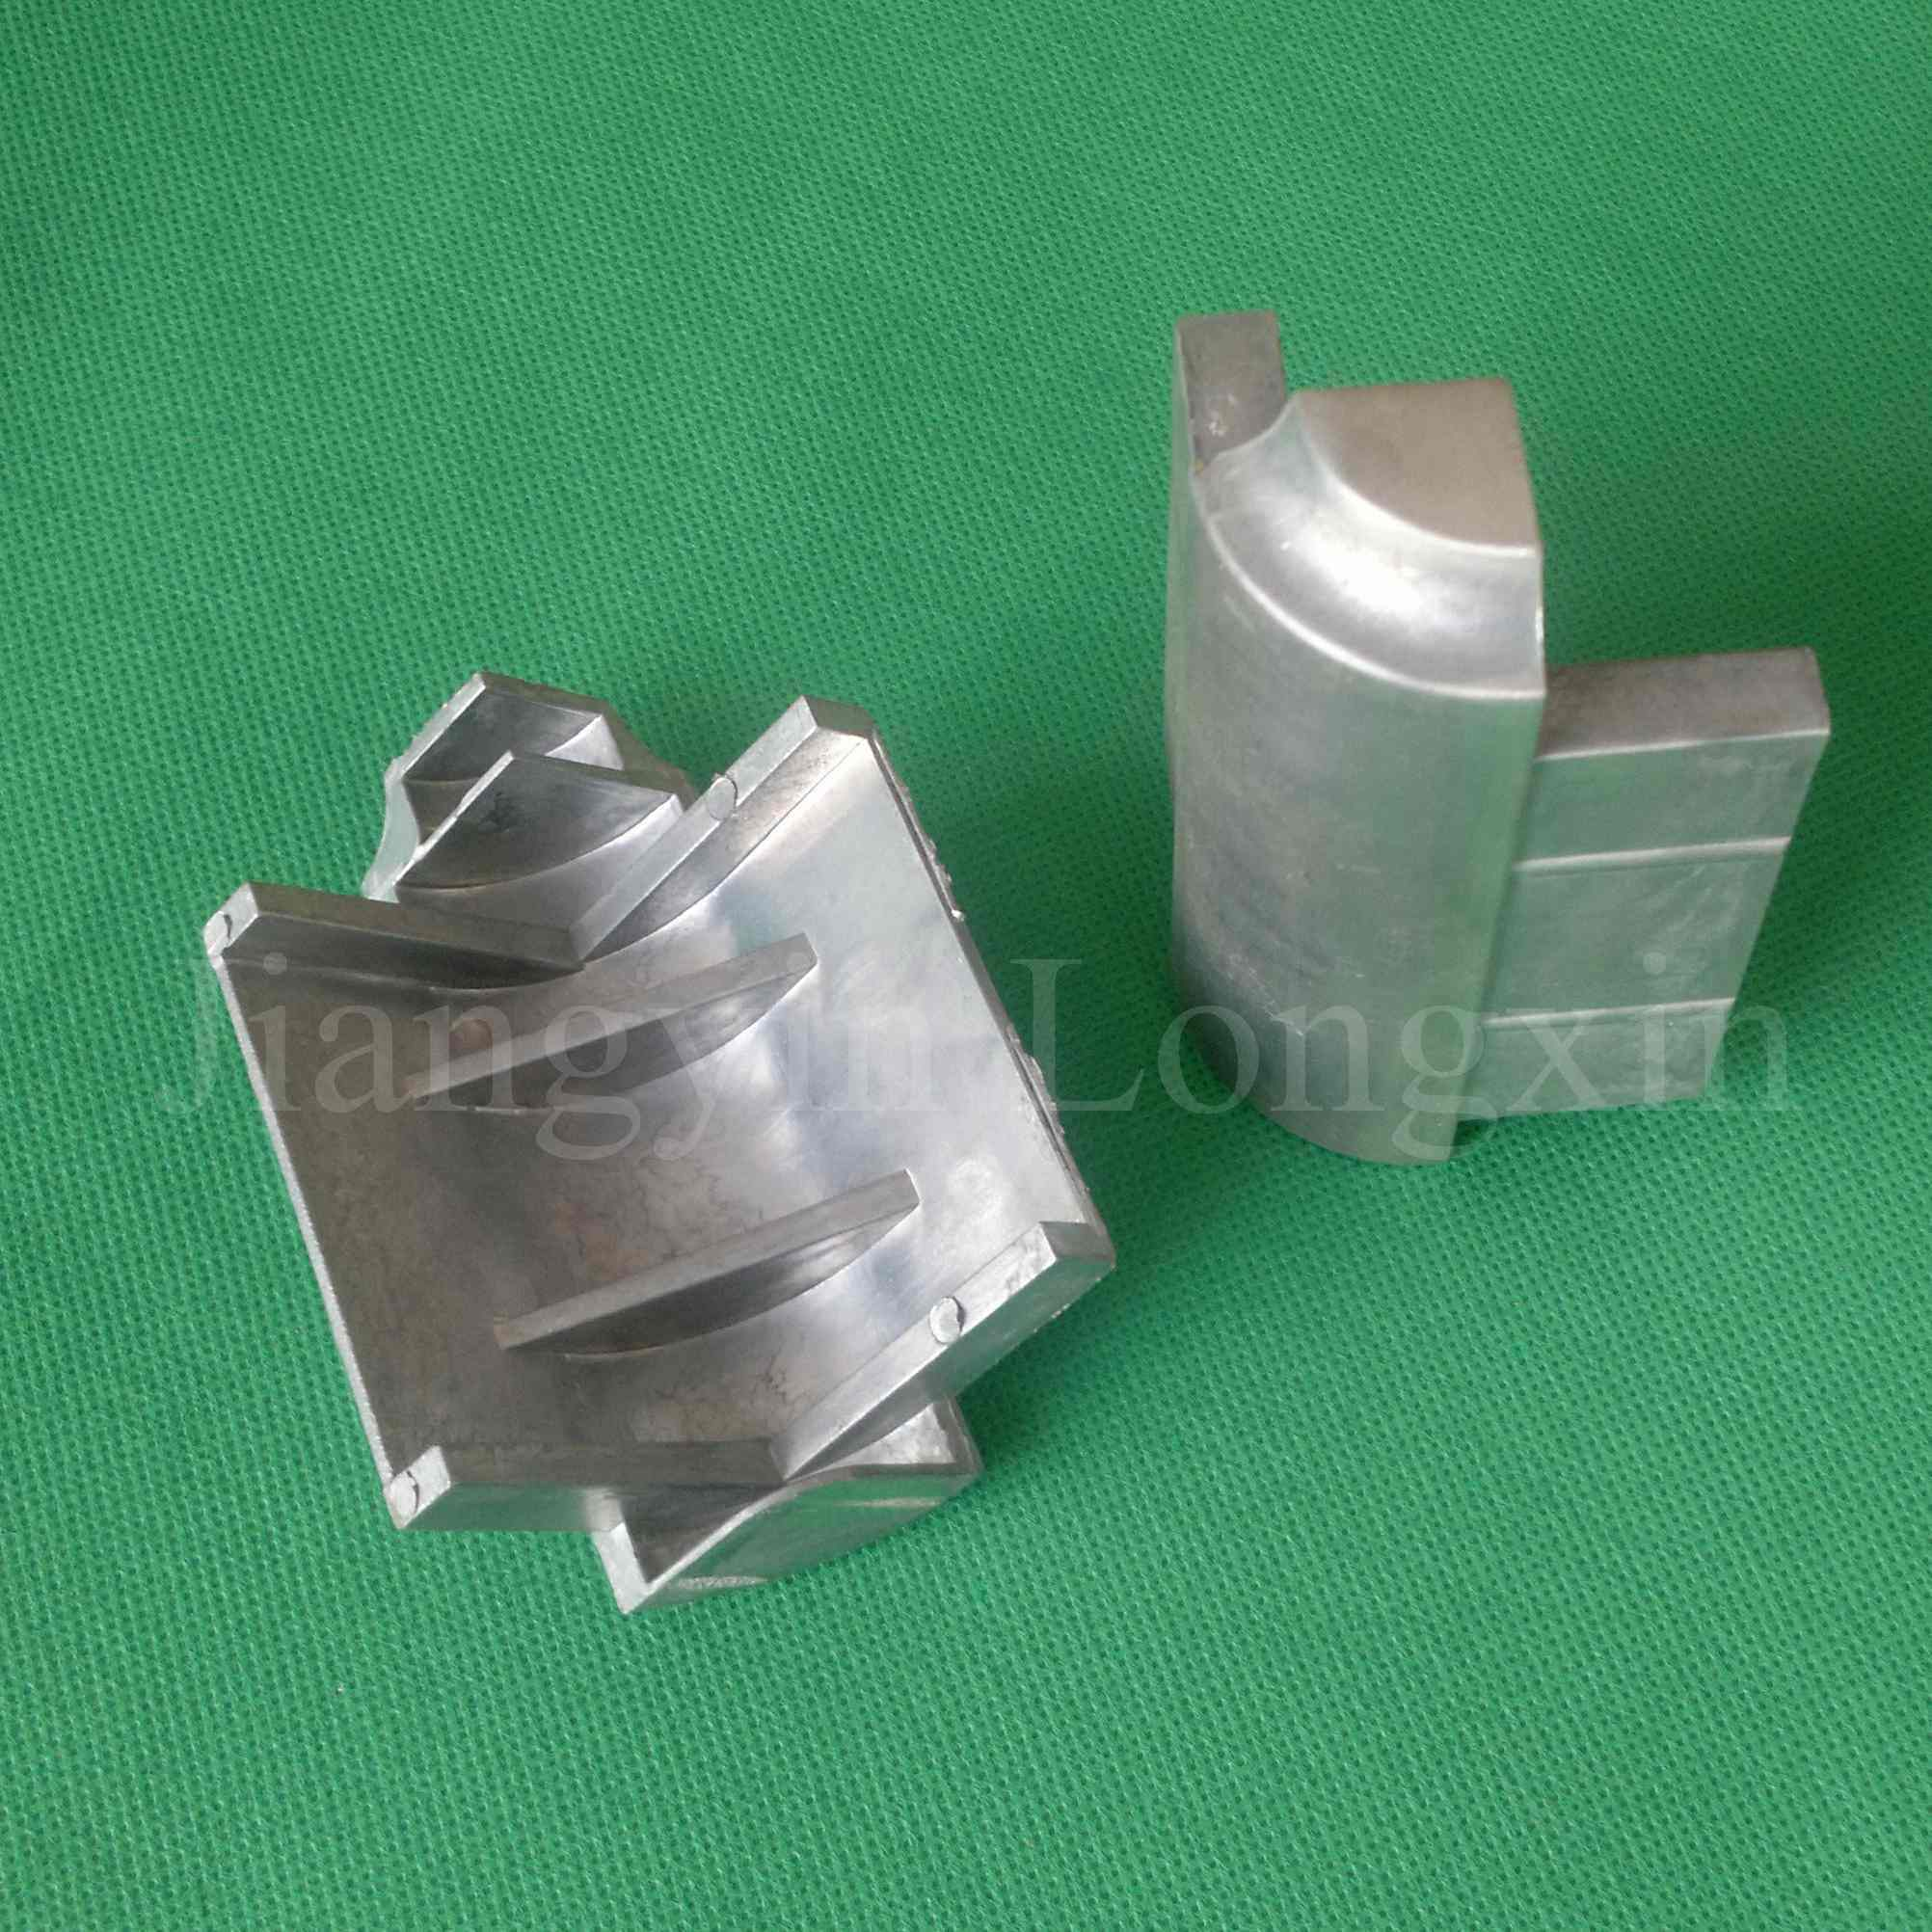 Casting Parts for Aluminum Profile Connection